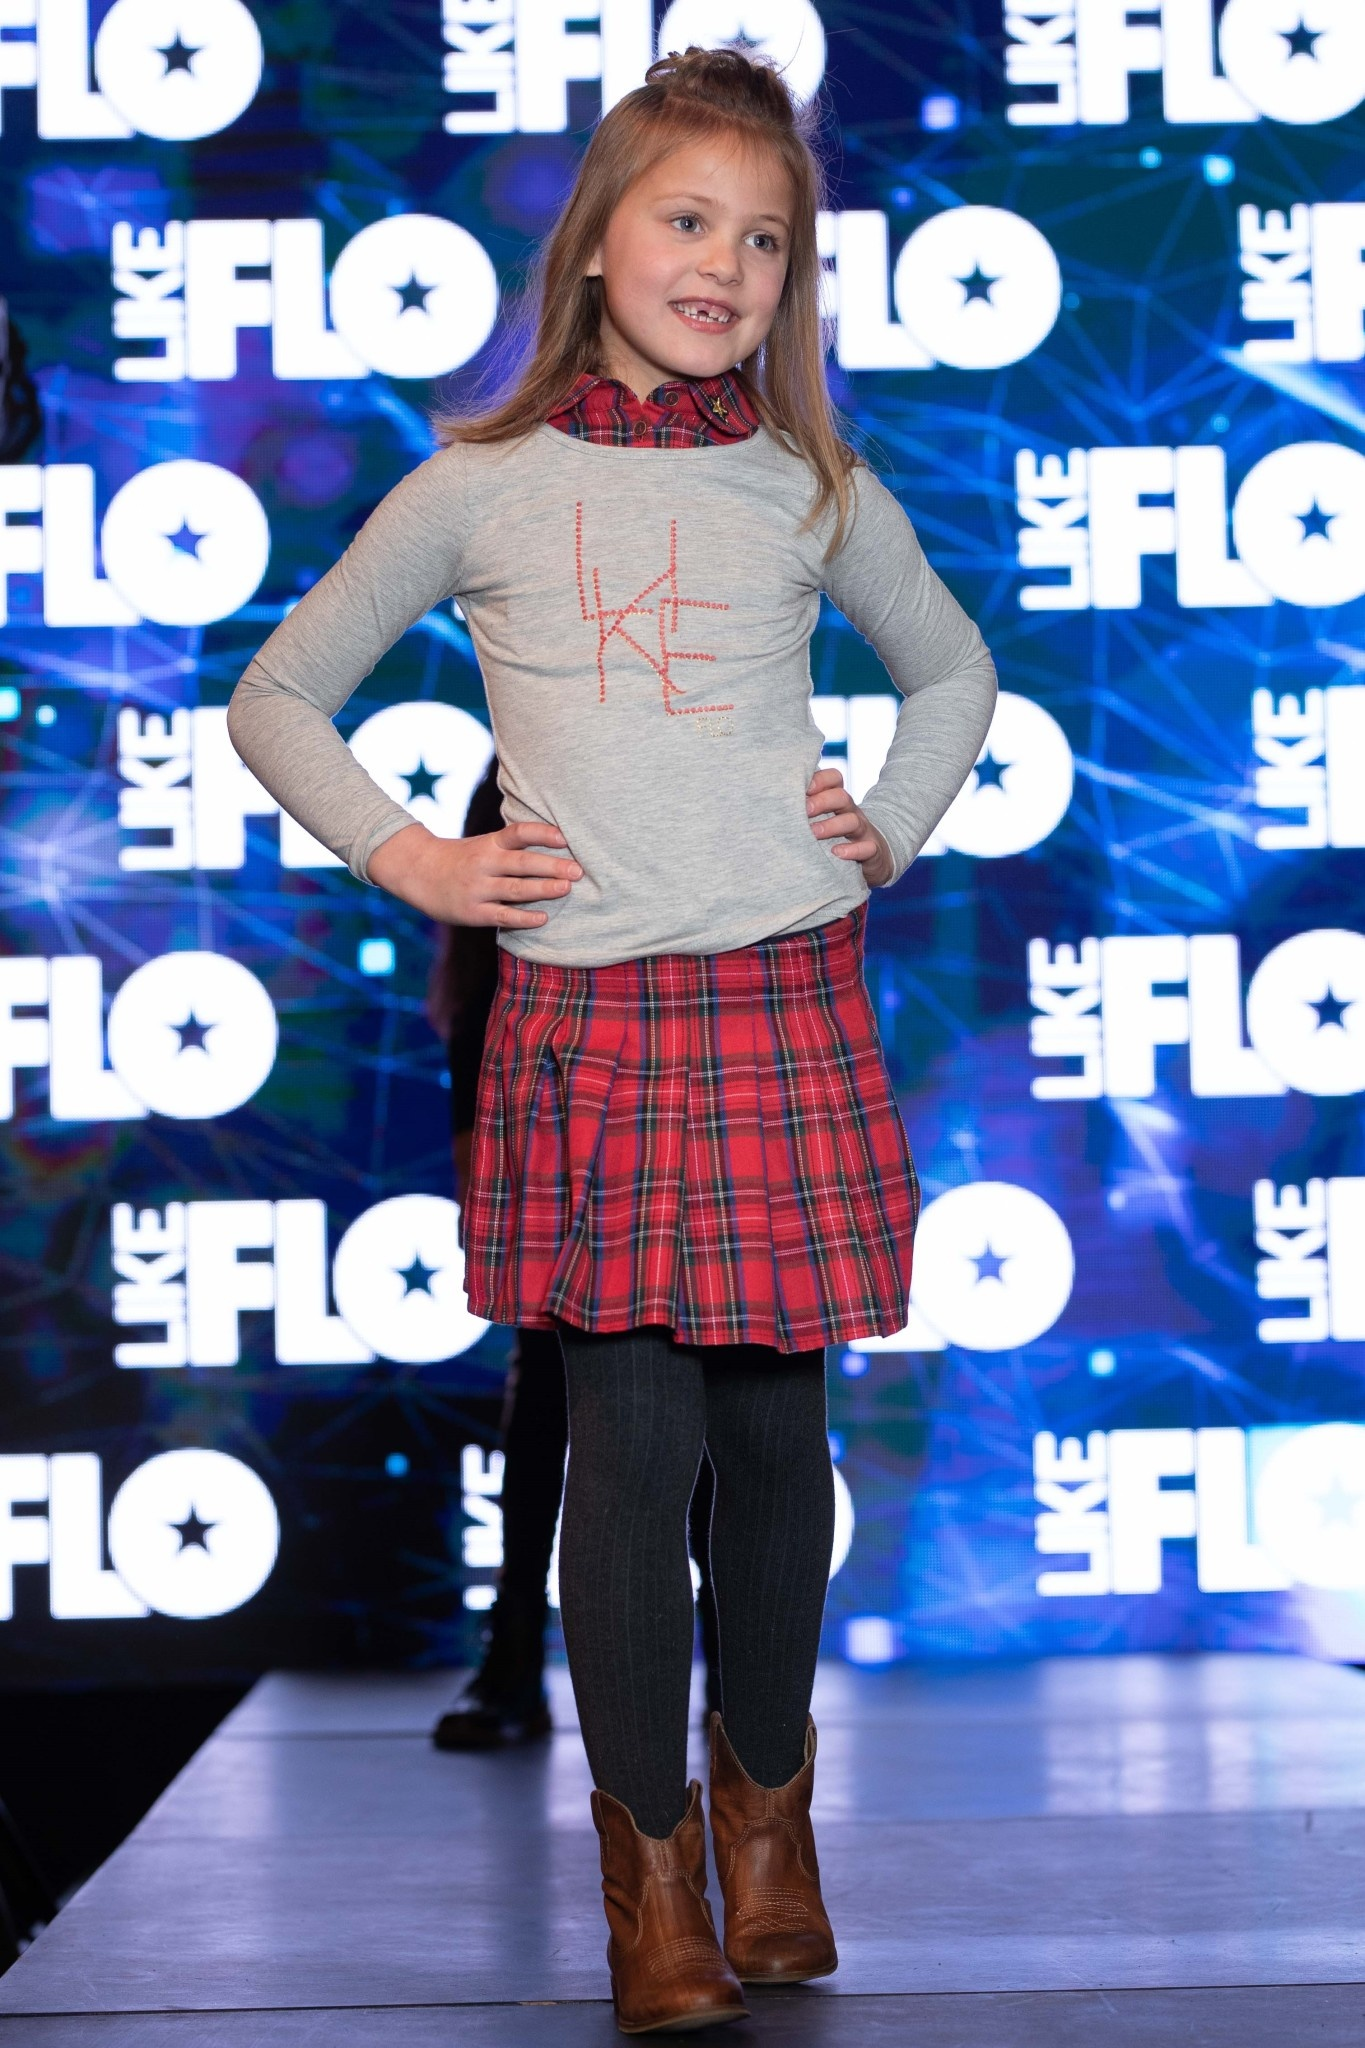 Like Flo Scottish Collar